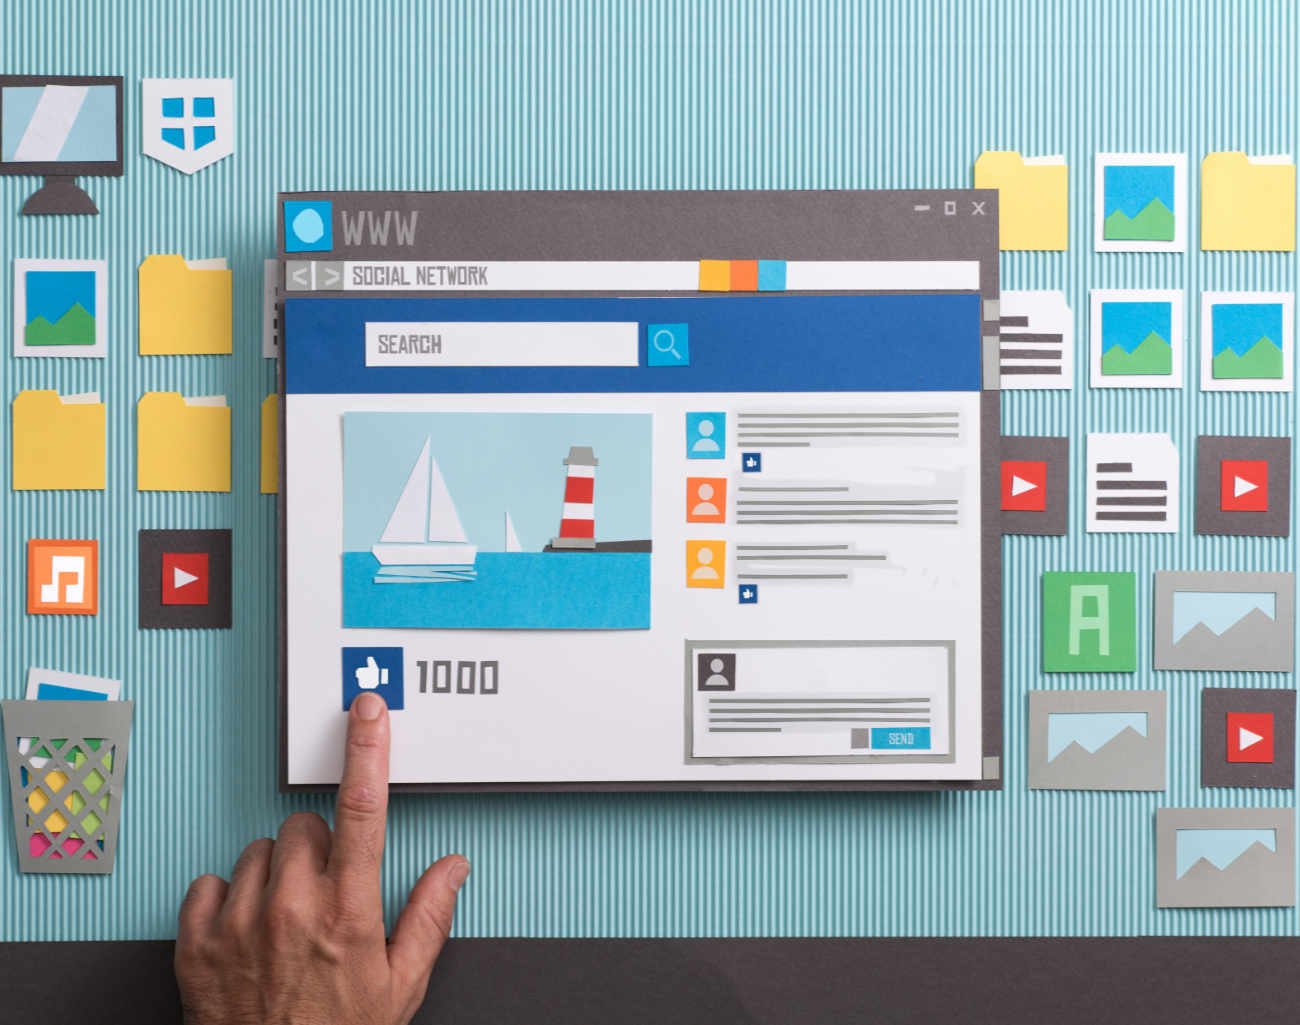 Social media engagement illustration showing cutouts and finger moving elements around